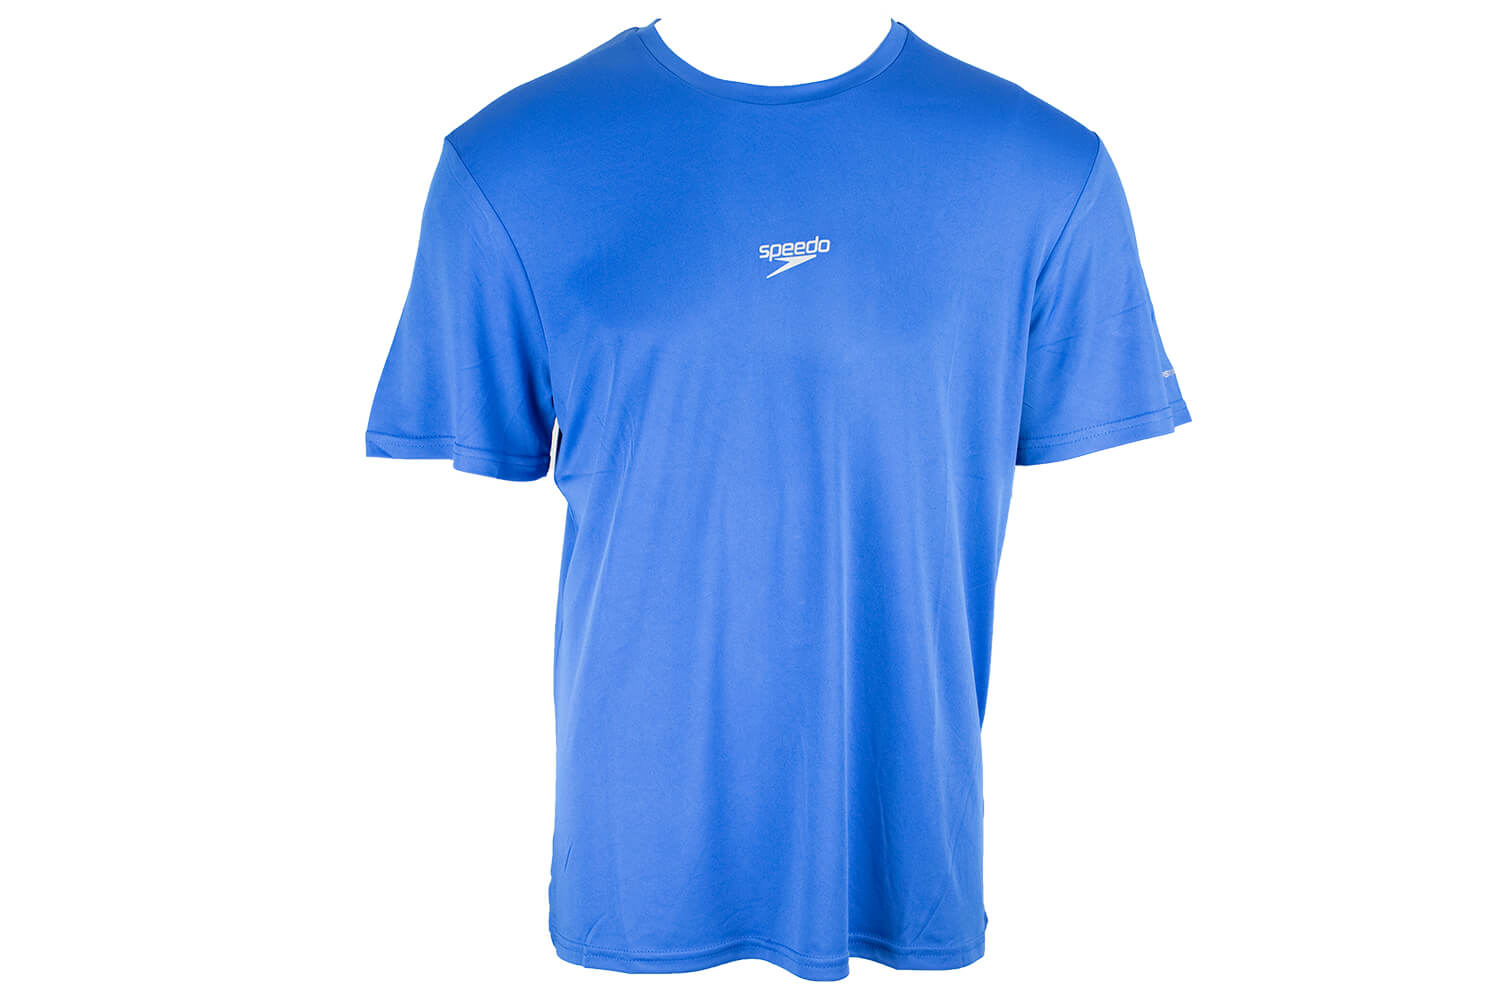 Camiseta Básica Corrida Speedo Interlock UV50 Azul